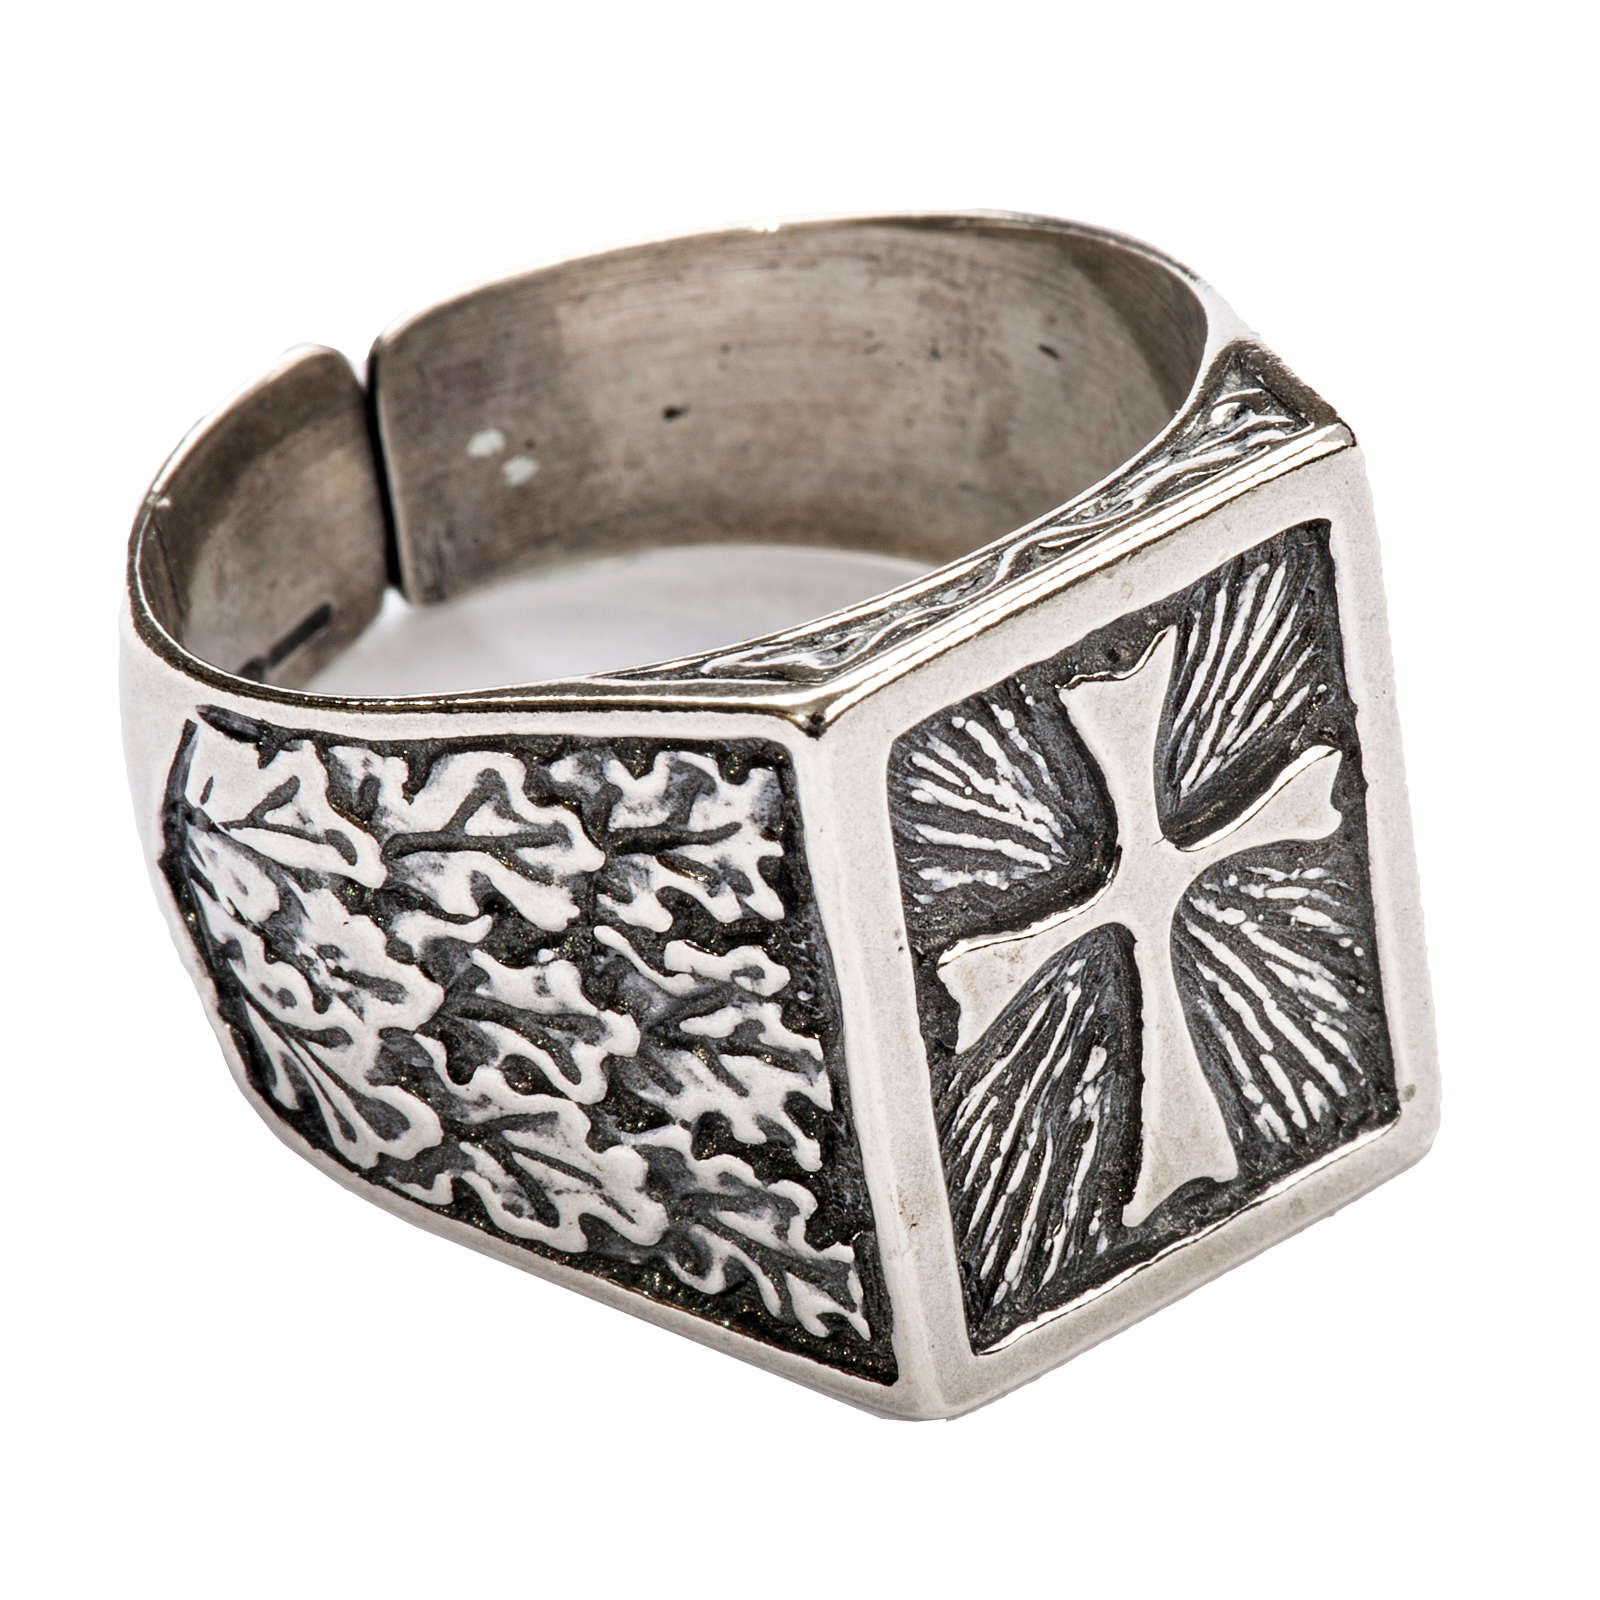 Bishop Ring, silver 800 with cross decoration 3